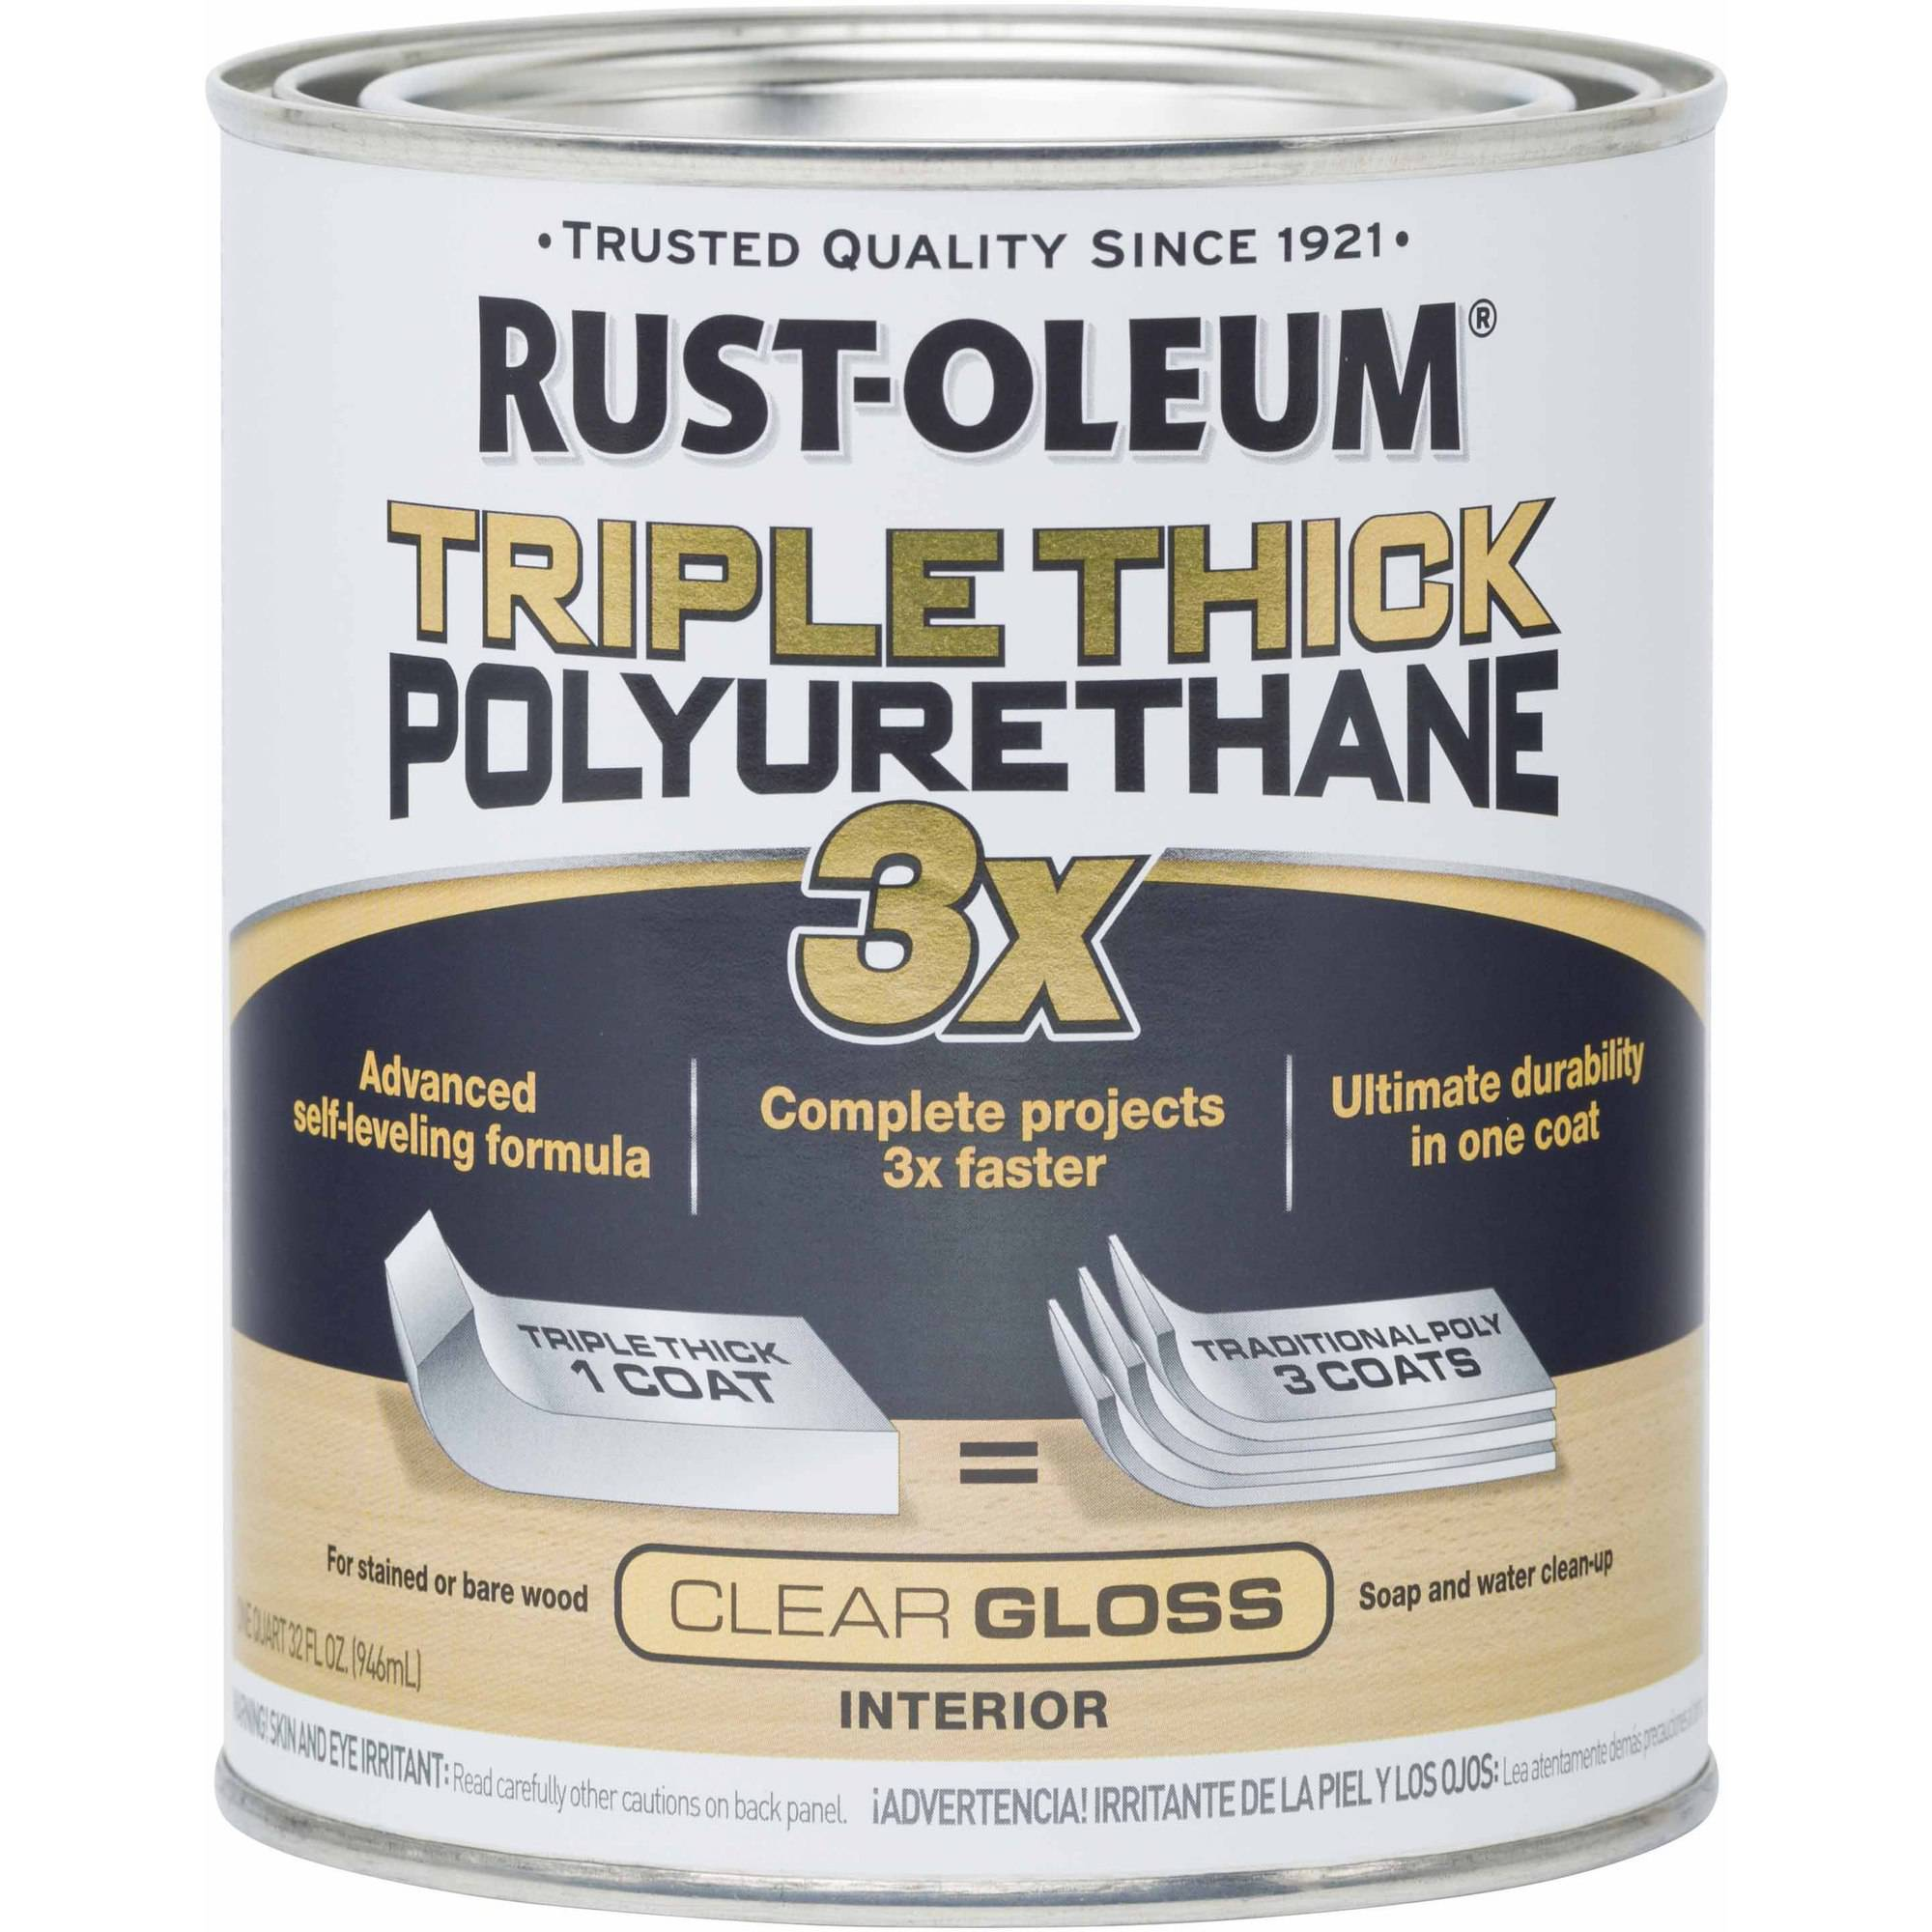 Rust-Oleum Triple Thick Polyurethane Quart, Gloss